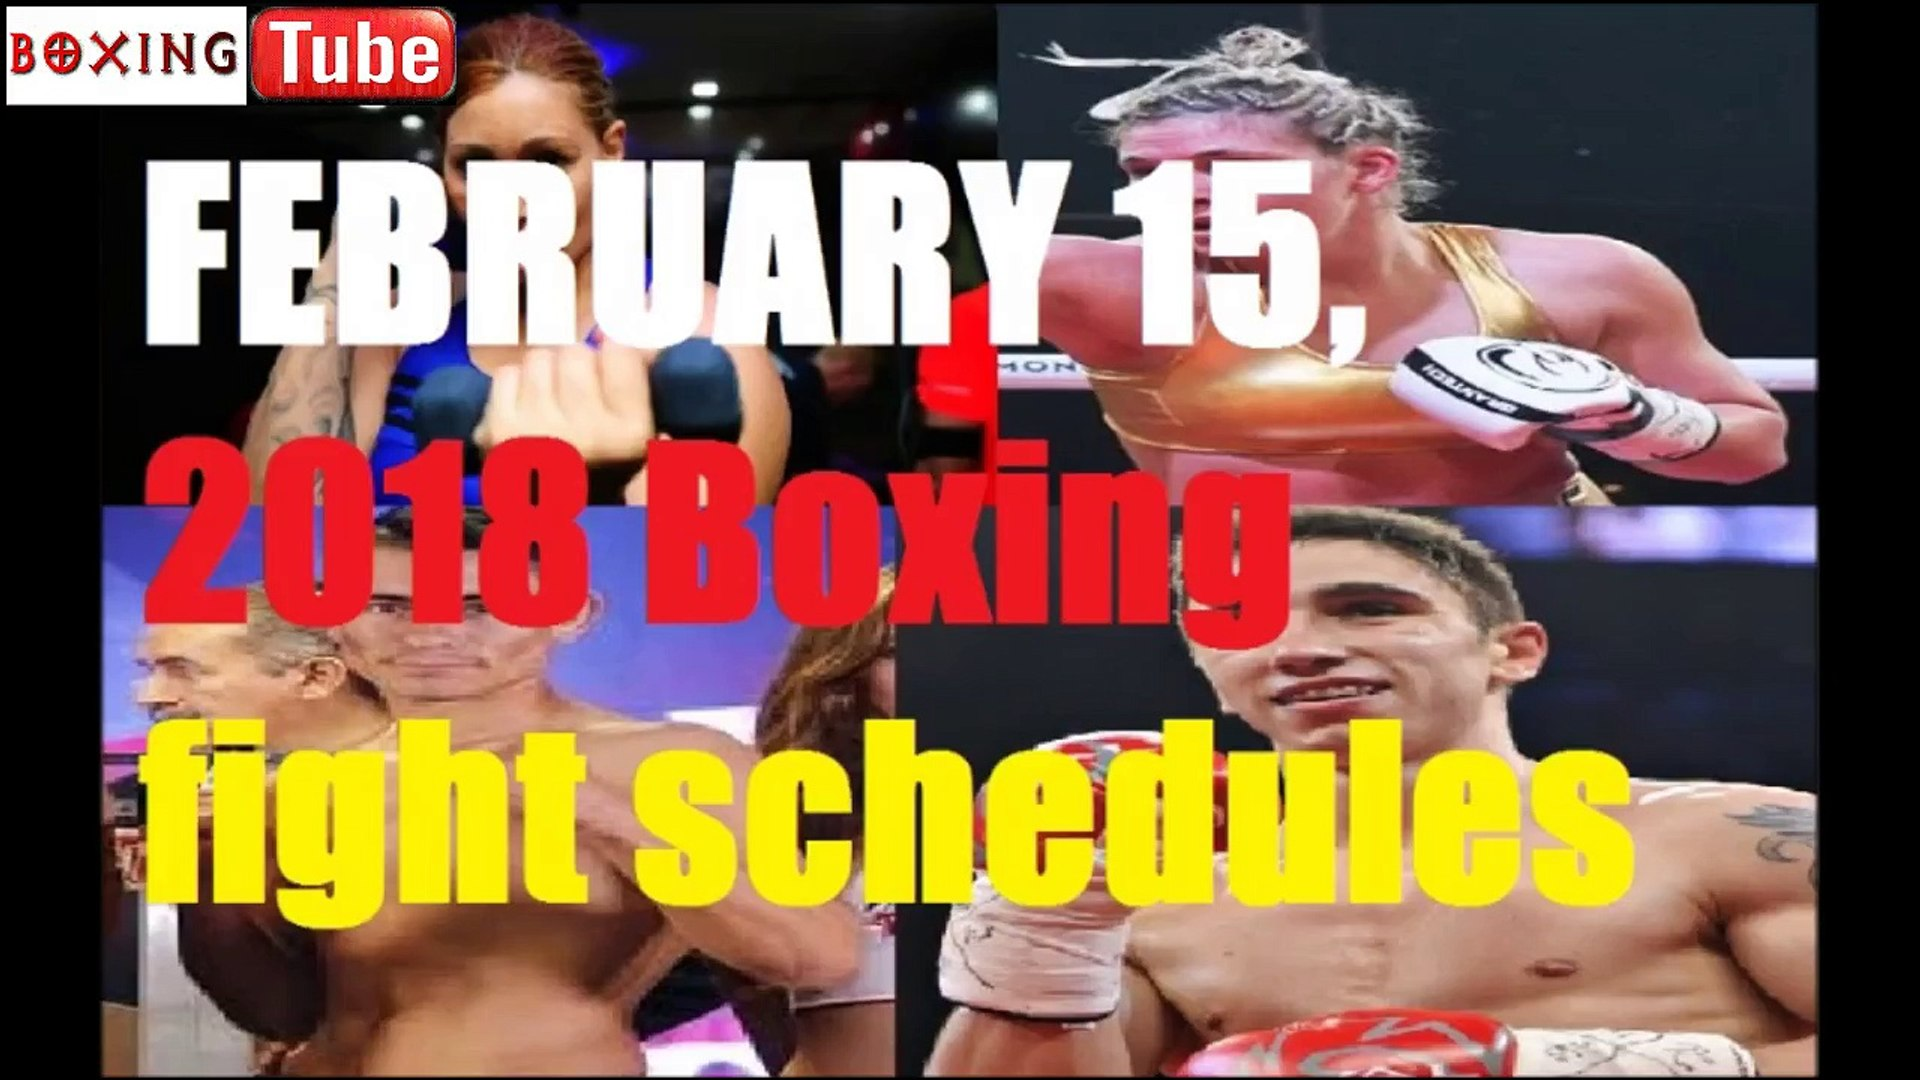 FEBRUARY 15, 2018 Boxing fight schedules (US TIME)